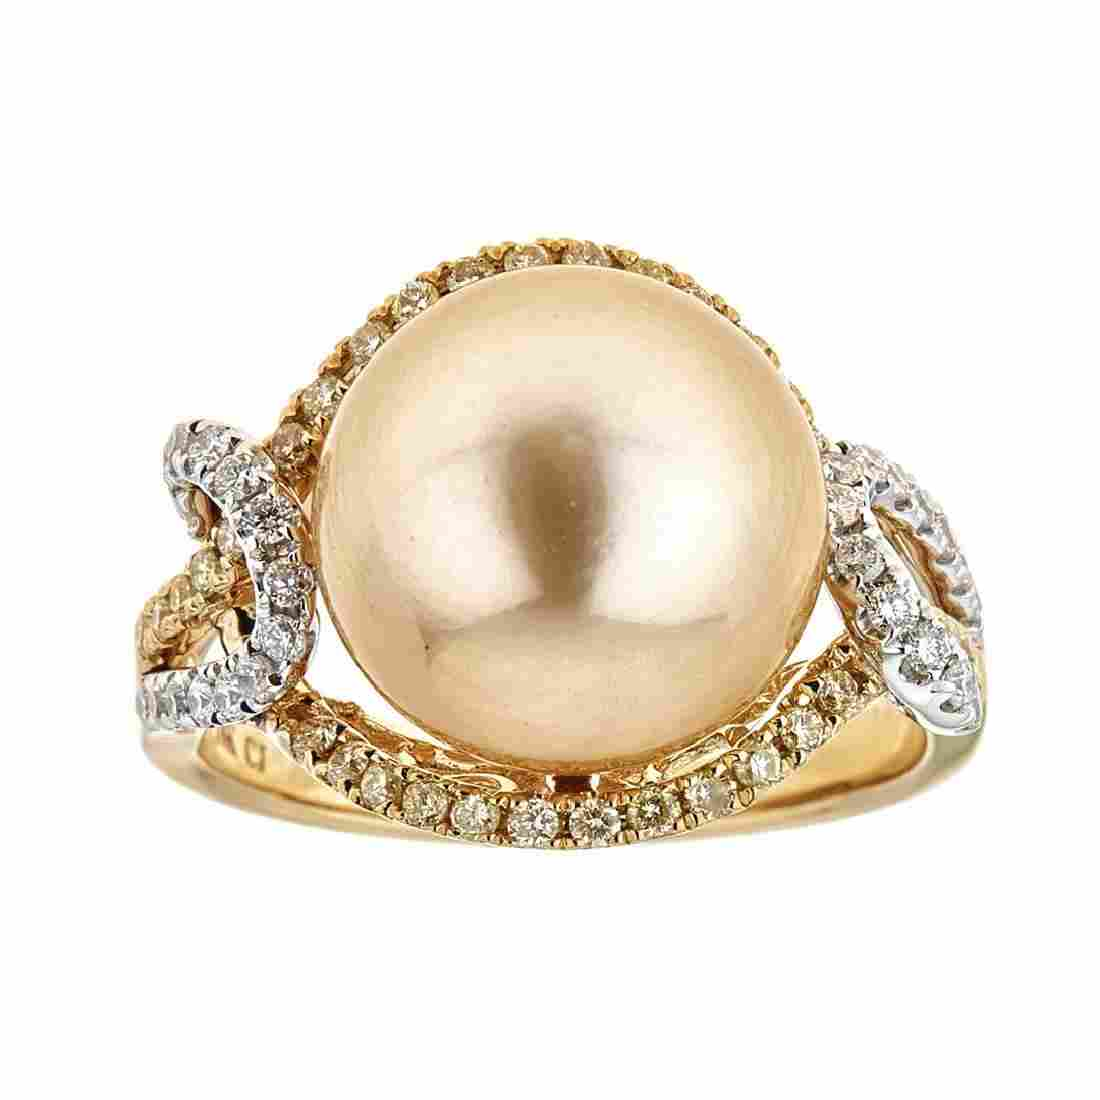 12.03 ctw South Sea Pearl and Diamond Ring - 18KT